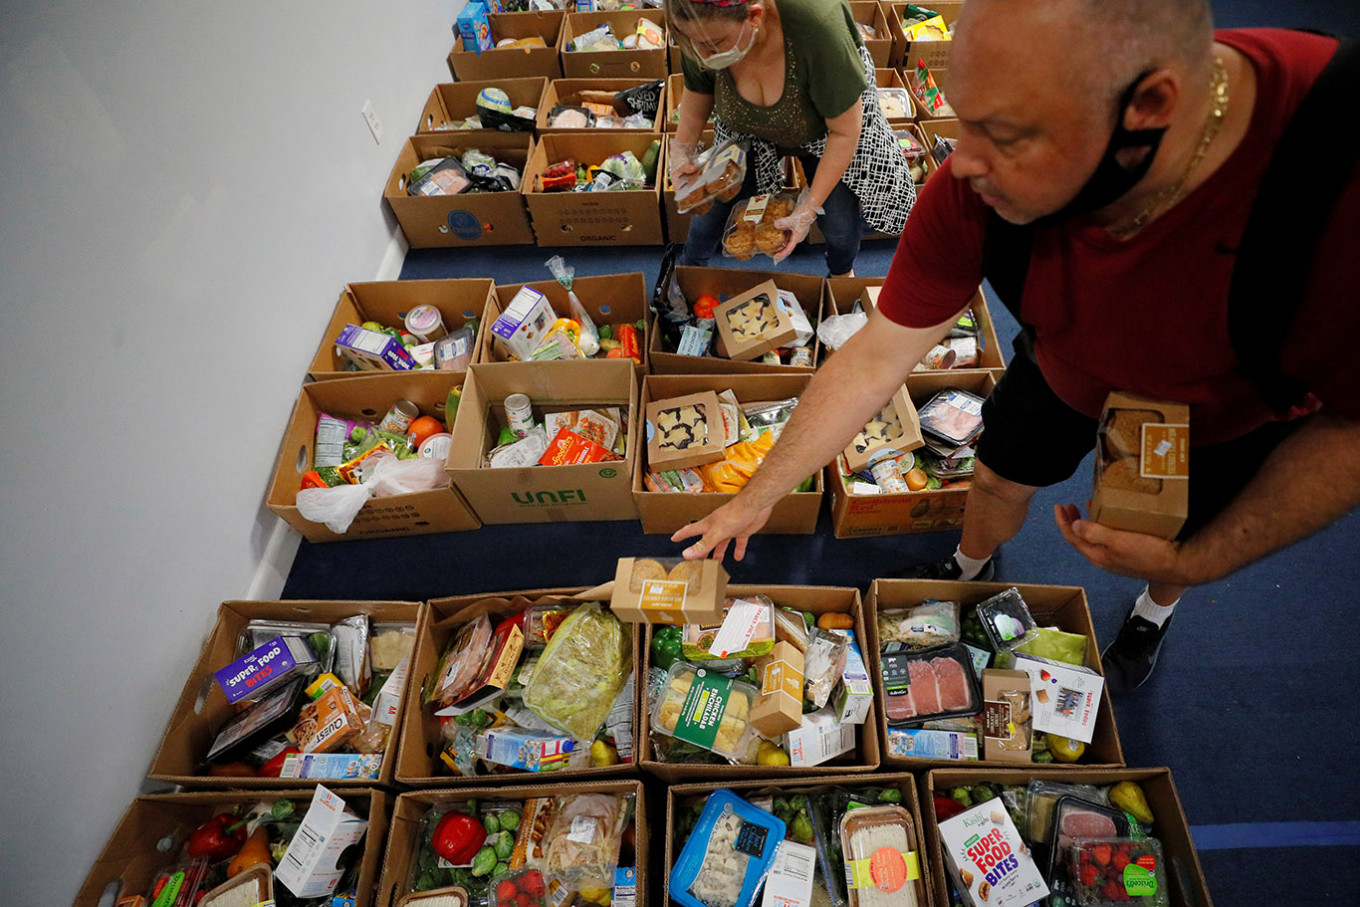 'I never thought I would have to come here.' Crisis drives French to food banks